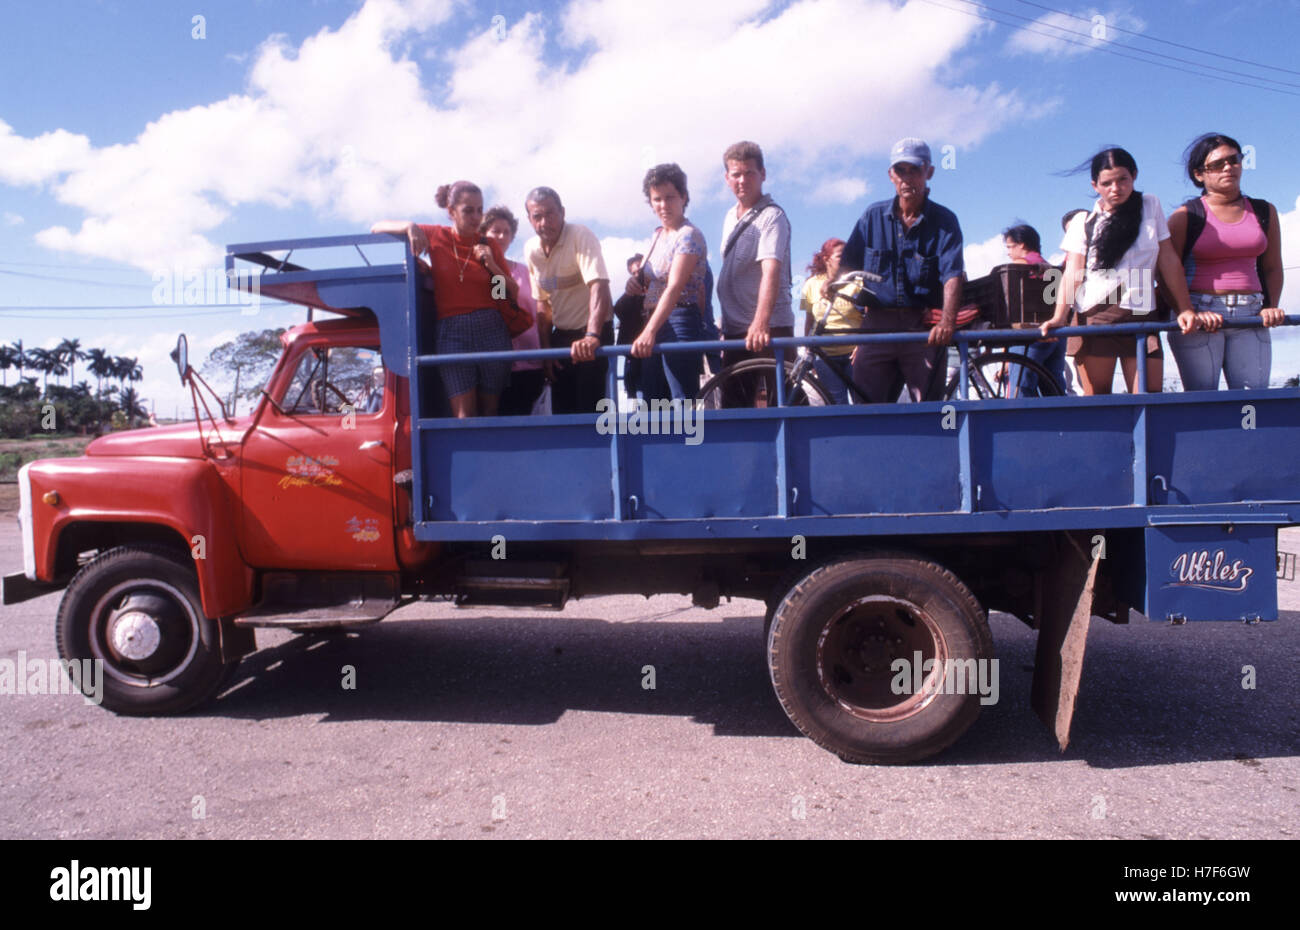 In Cuba it is mandatory to pick up hitchhikers, as seen on this ...